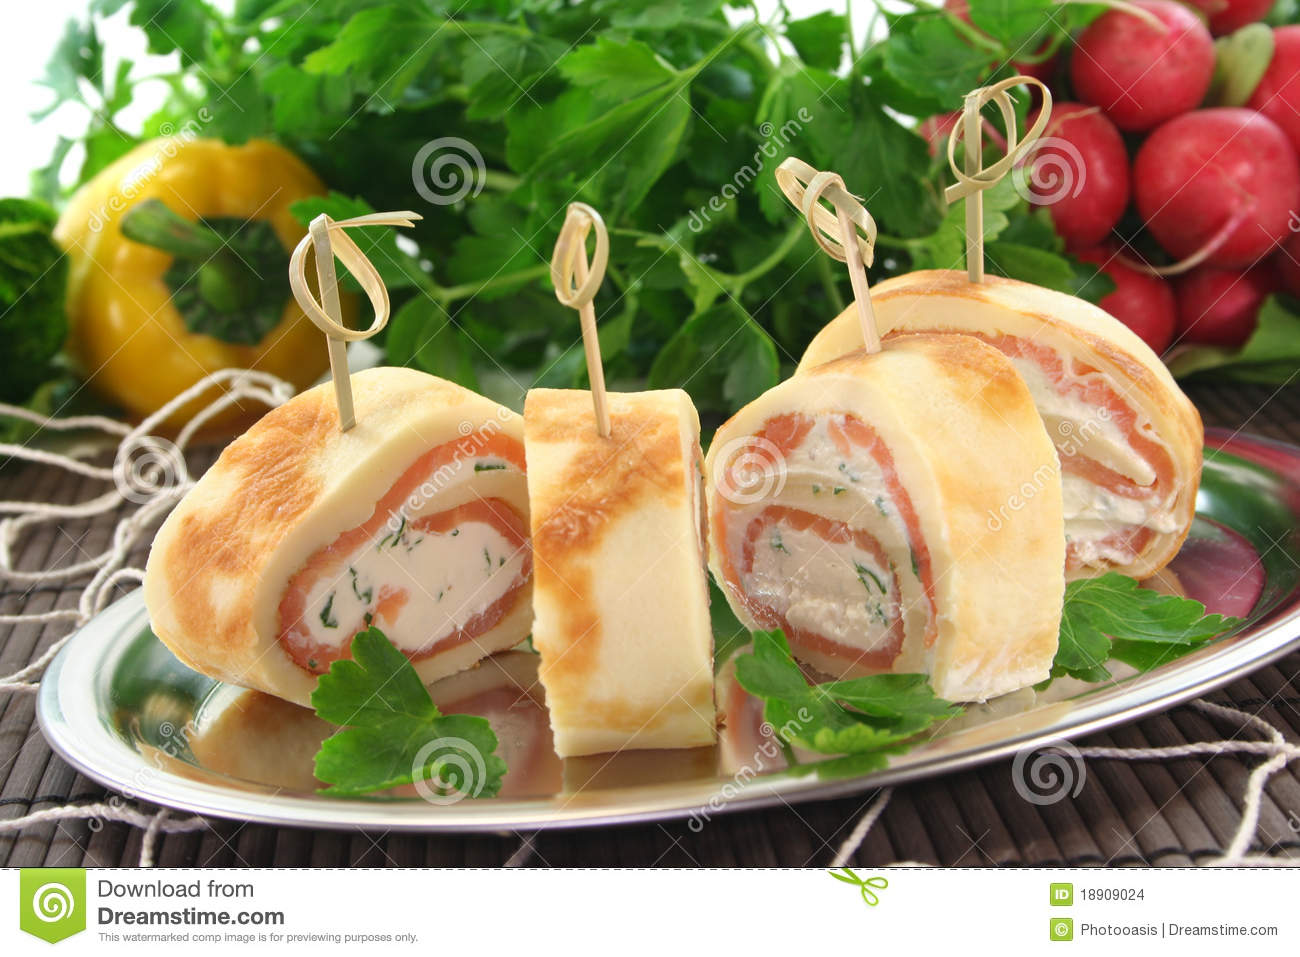 Pancakes With Salmon And Cream Cheese Stock Images - Image: 18909024